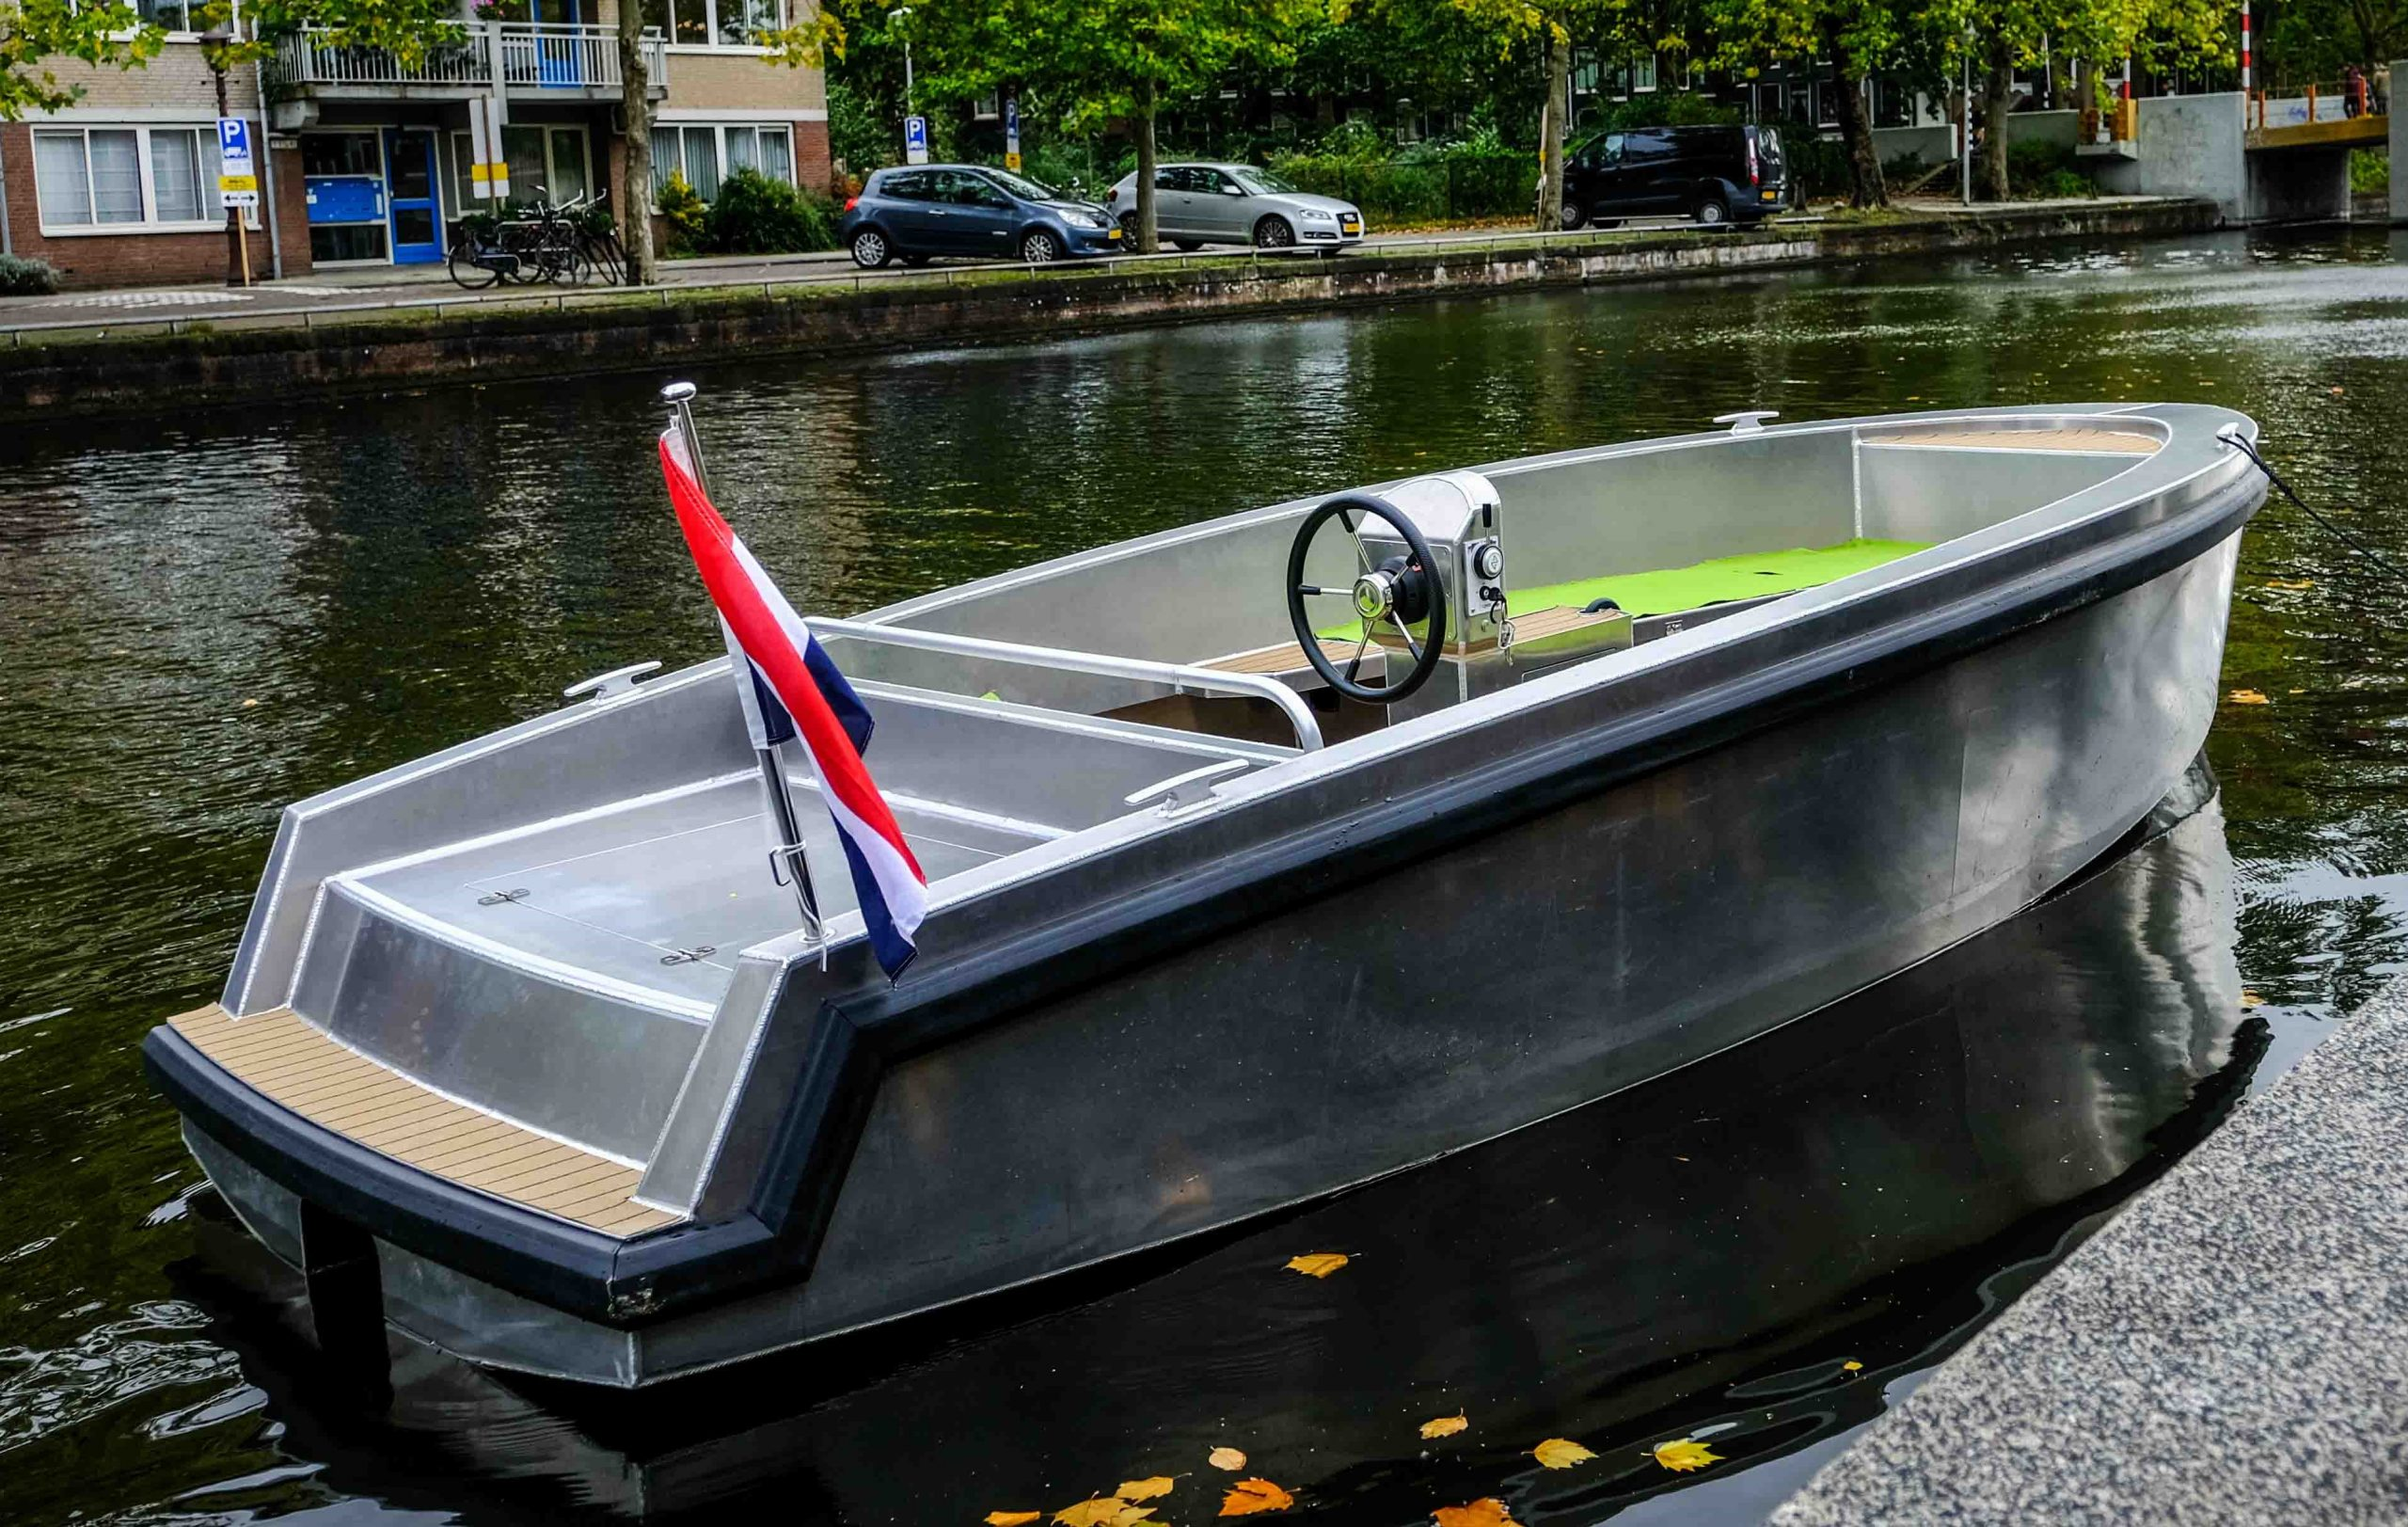 Eagle Tenders: never has a rental boat looked so chic!